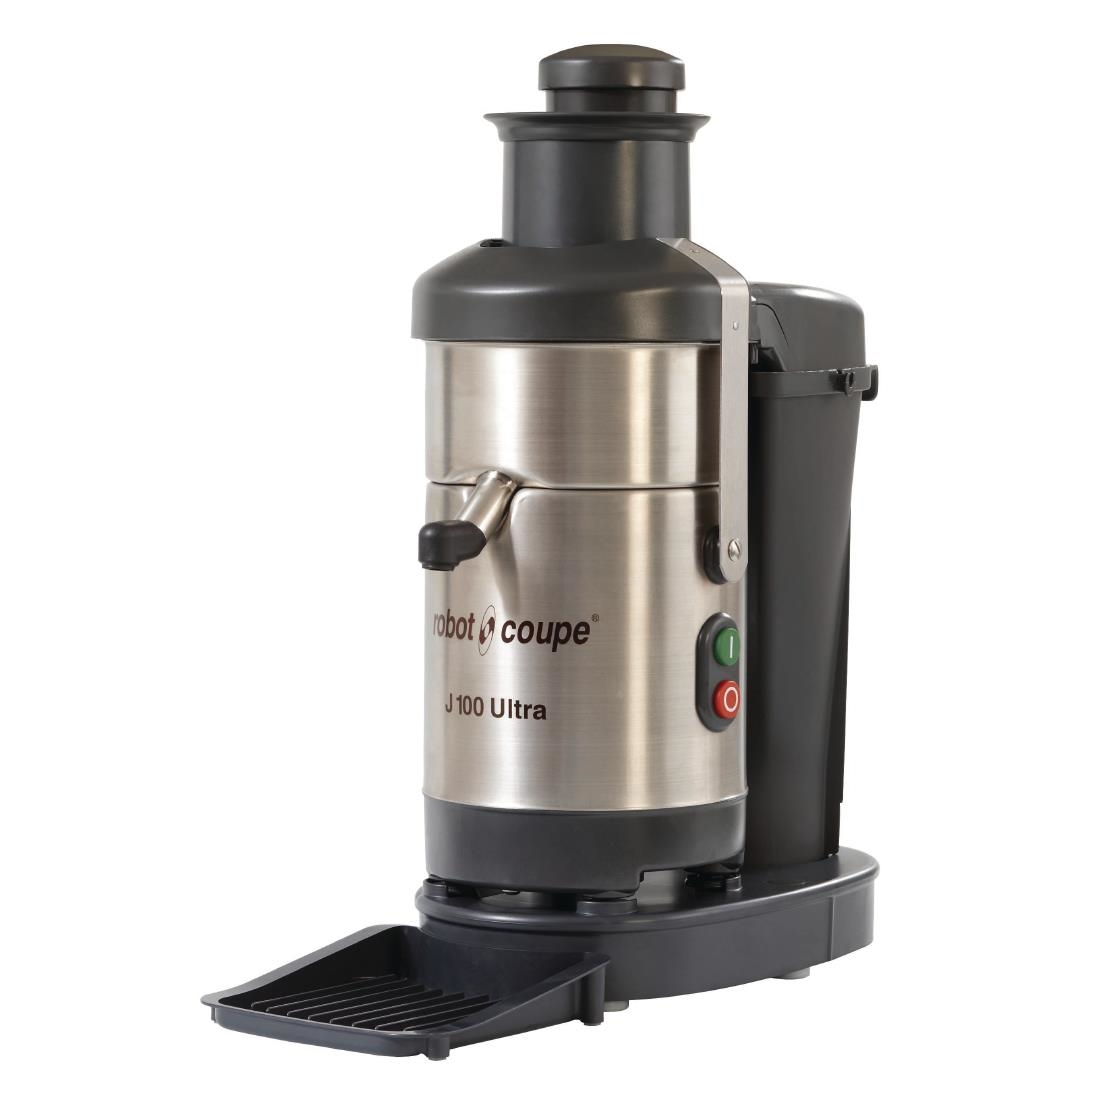 Image of Robot Coupe Automatic Juicer J100 Ultra